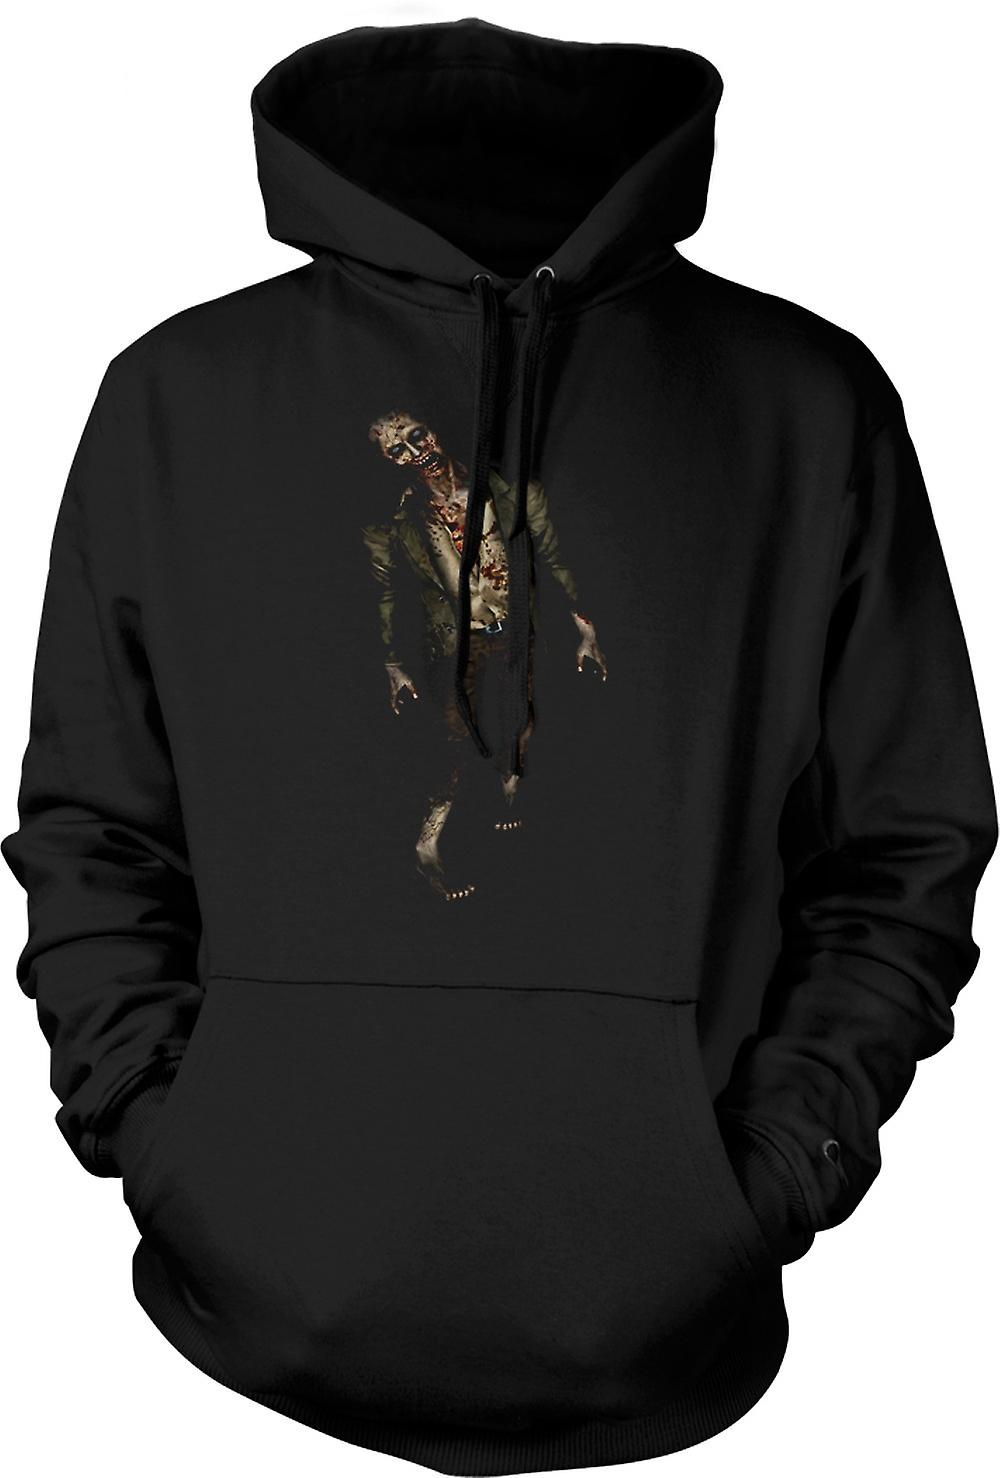 Mens Hoodie - Zombie Undead Walking - Horror